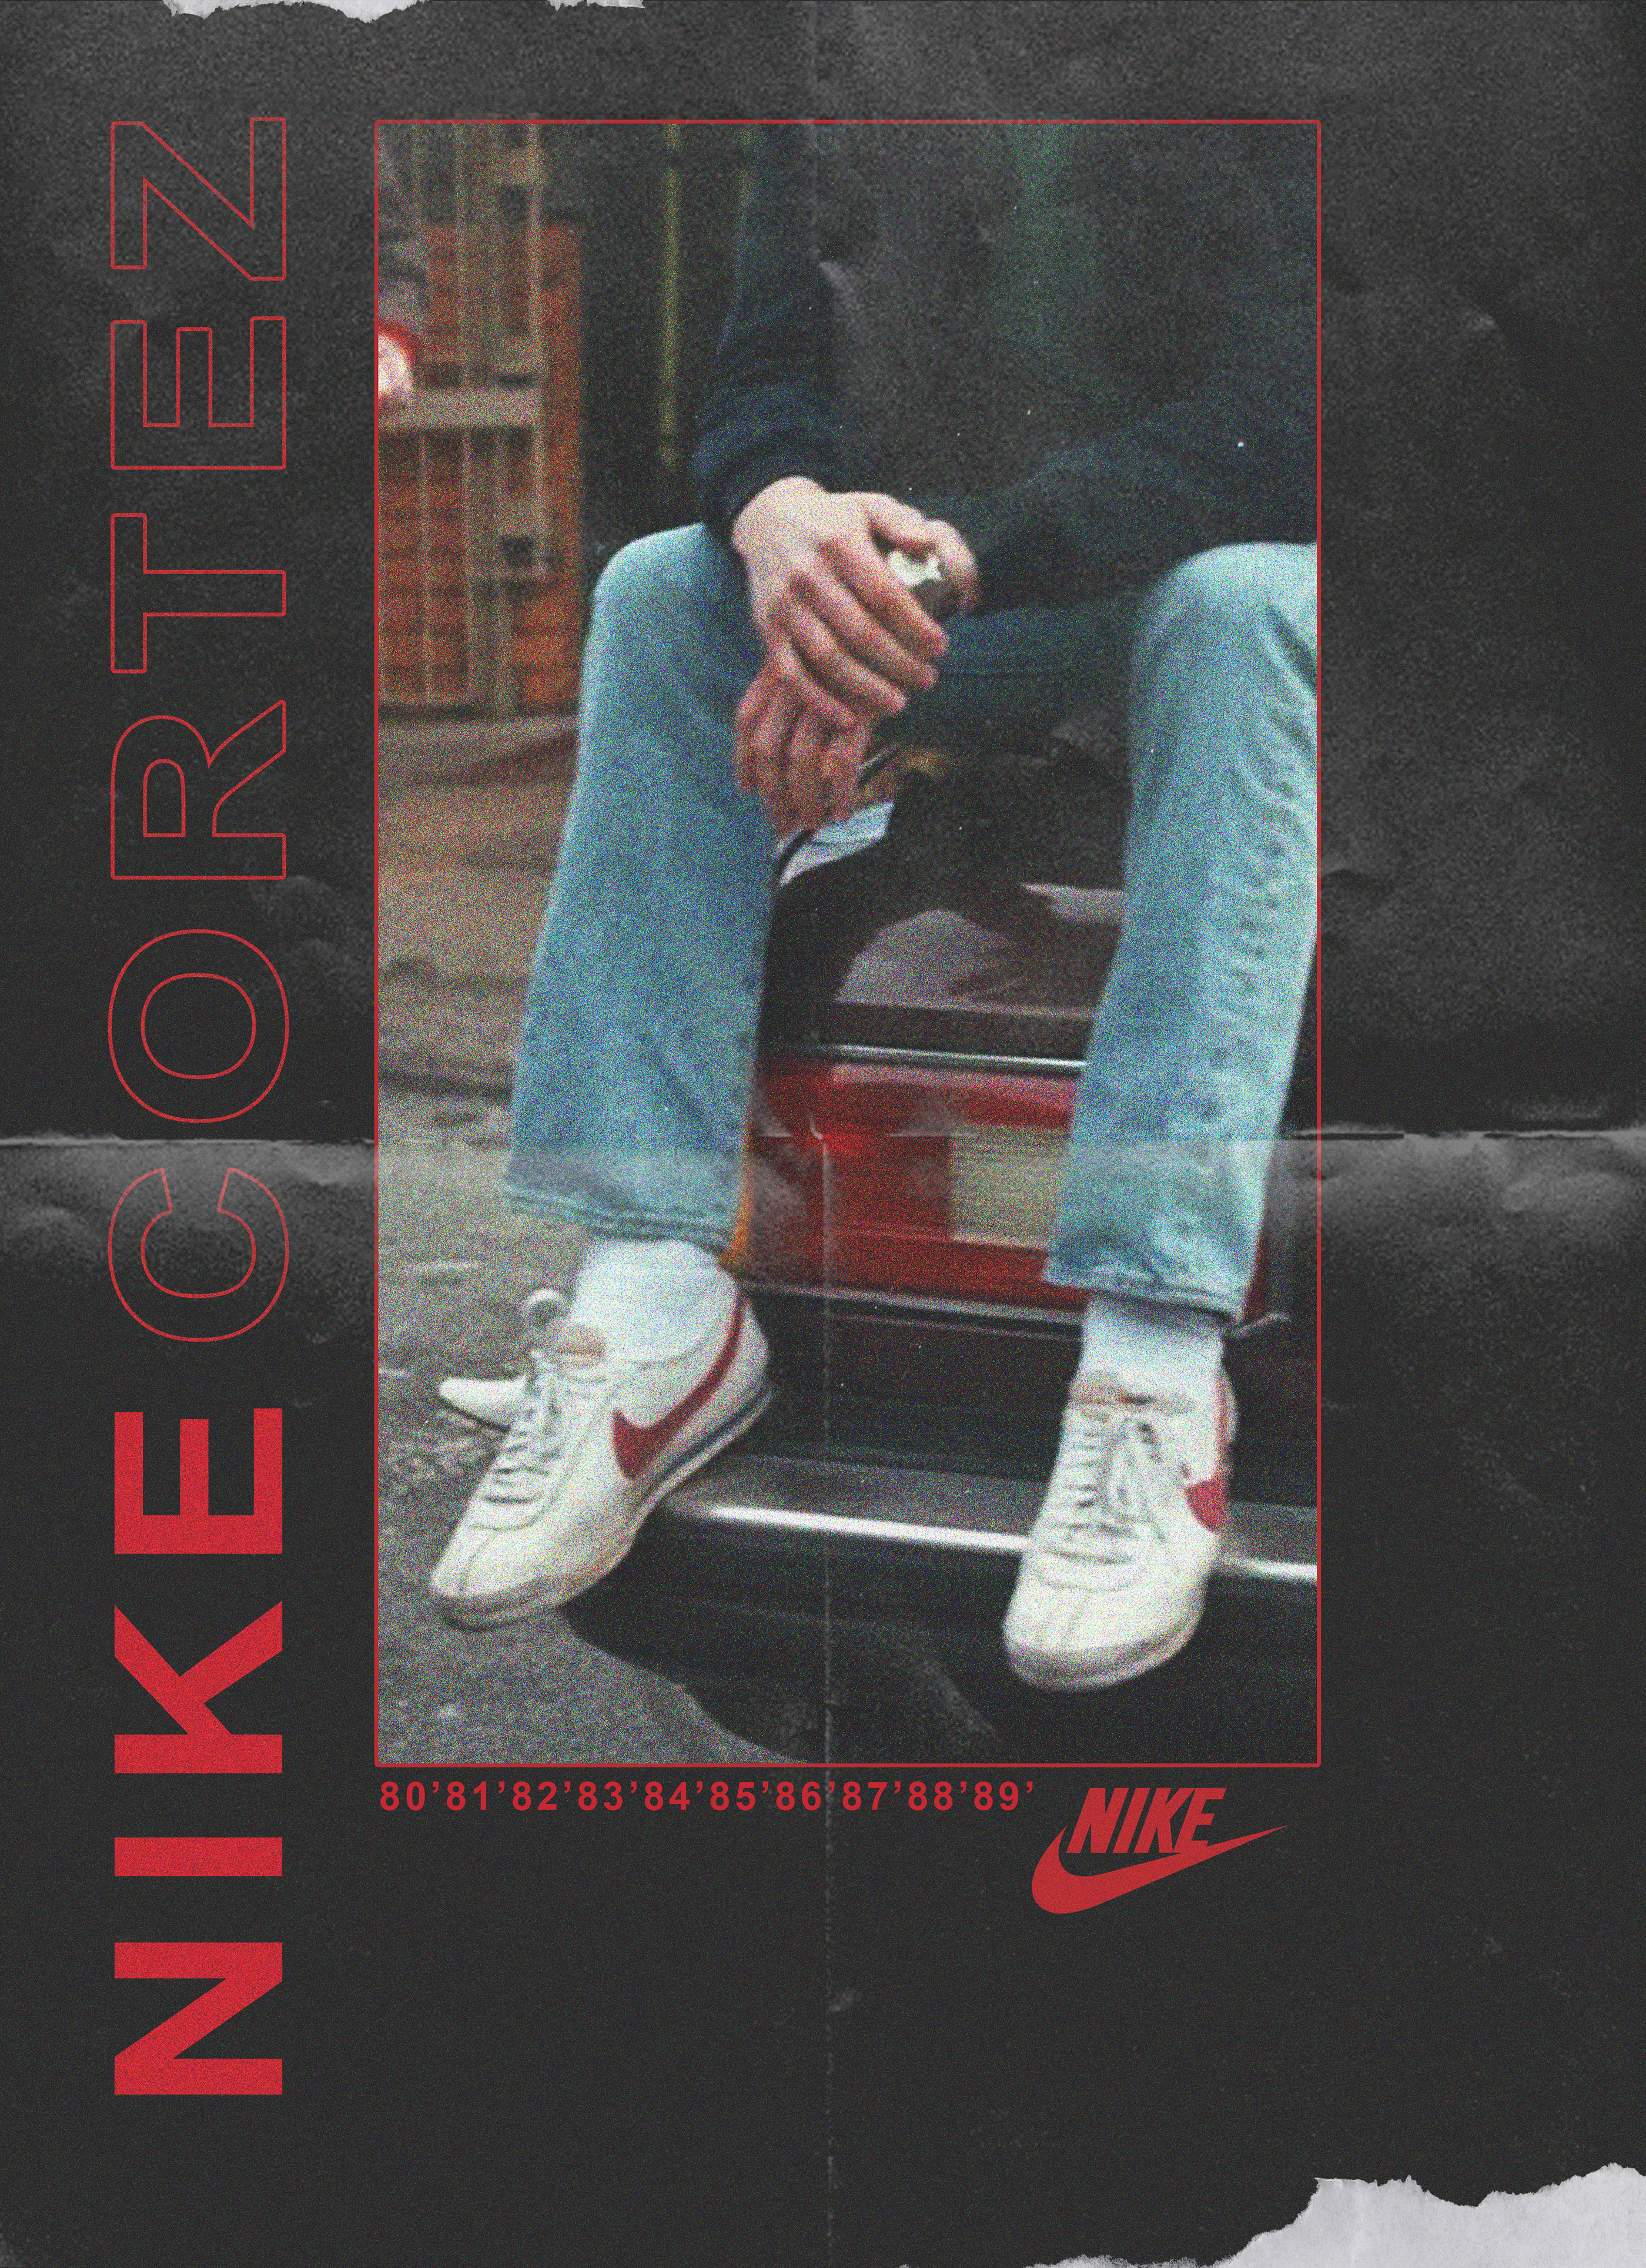 Nike Cortez 1980's Poster Experiment on